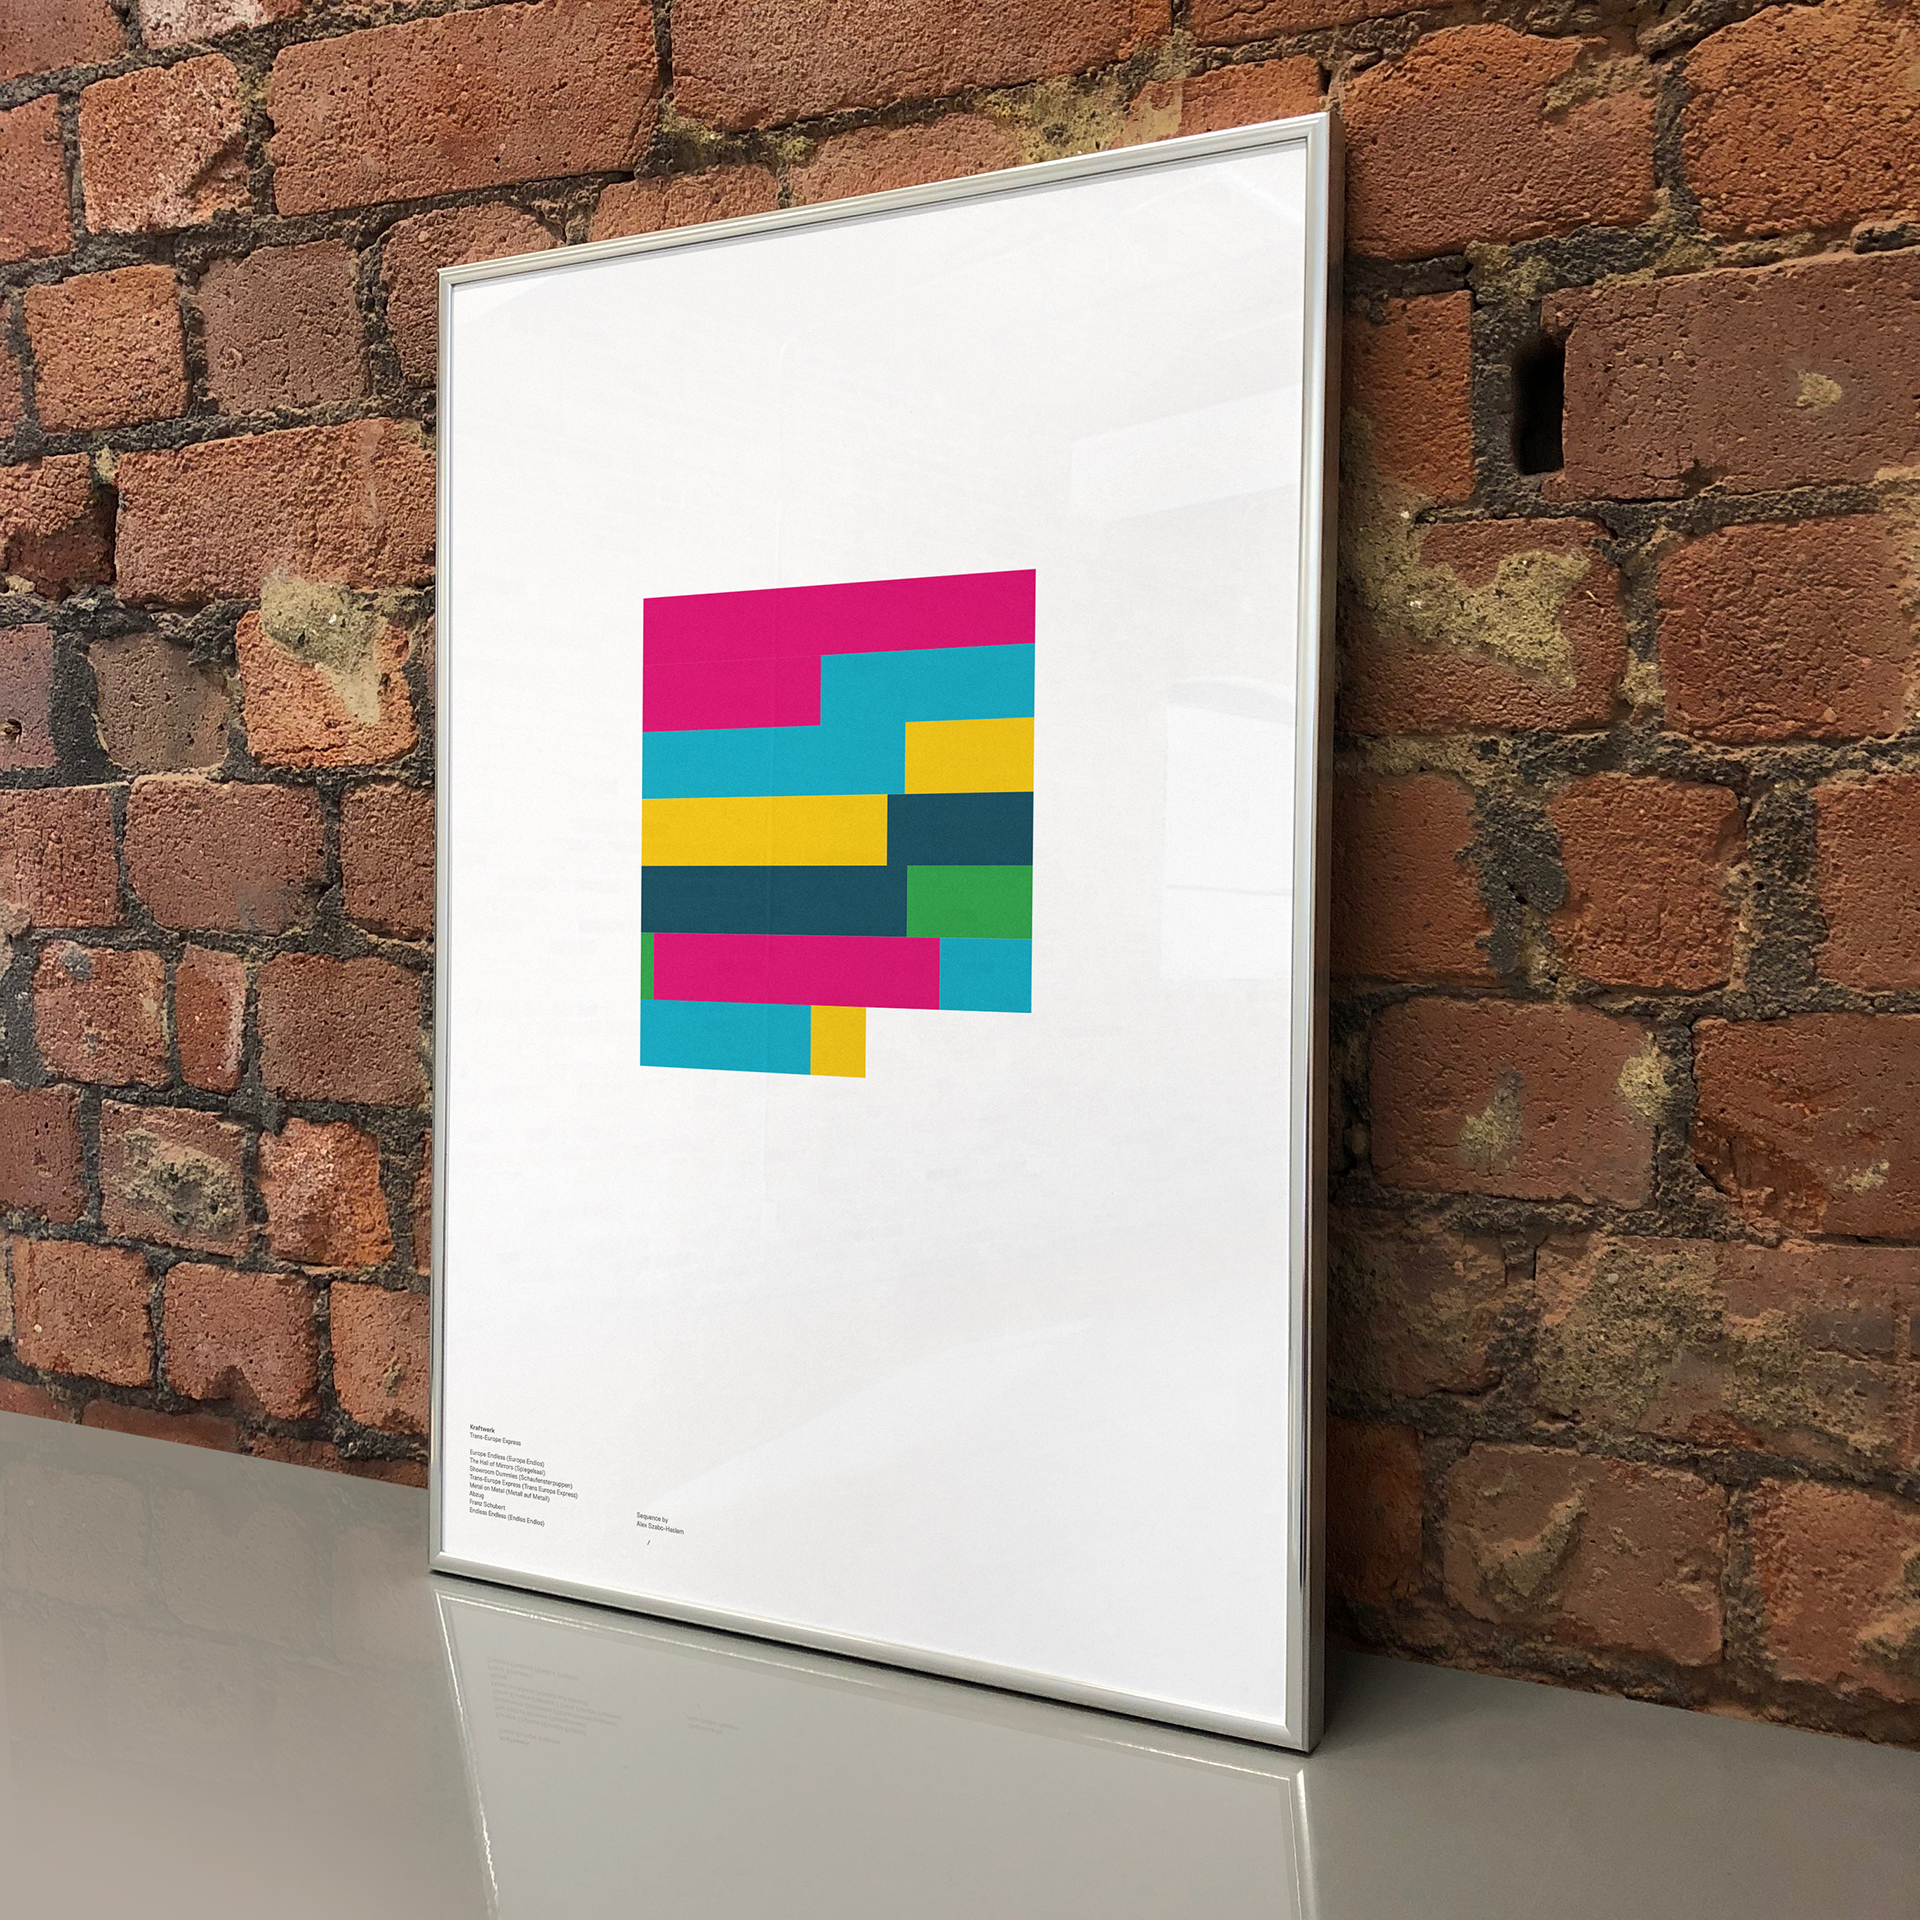 Sequence turns your favourite album into customizable art